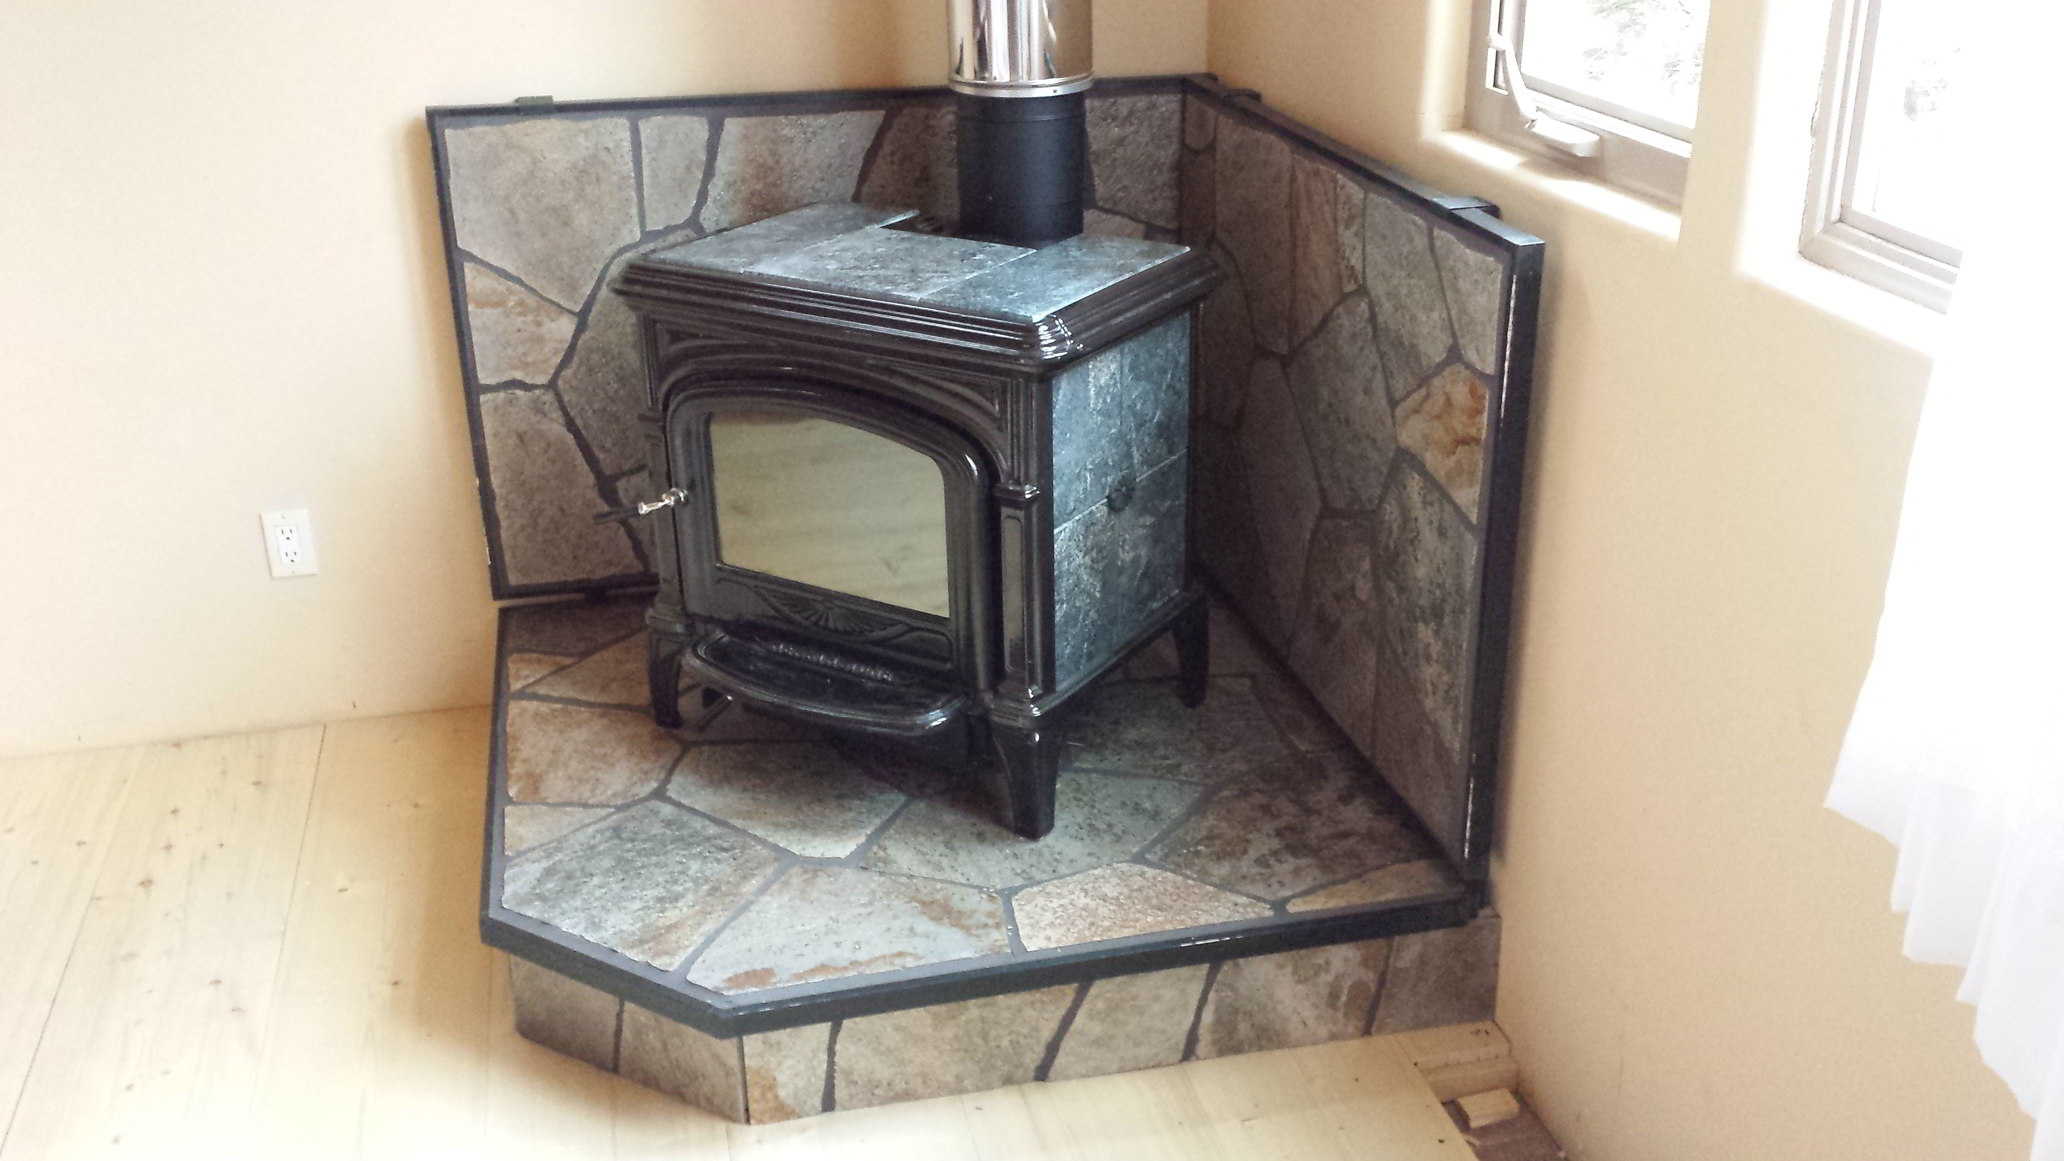 A wood burning stove with rock masonry heat guards installed by Shangrilah Stove LLC.